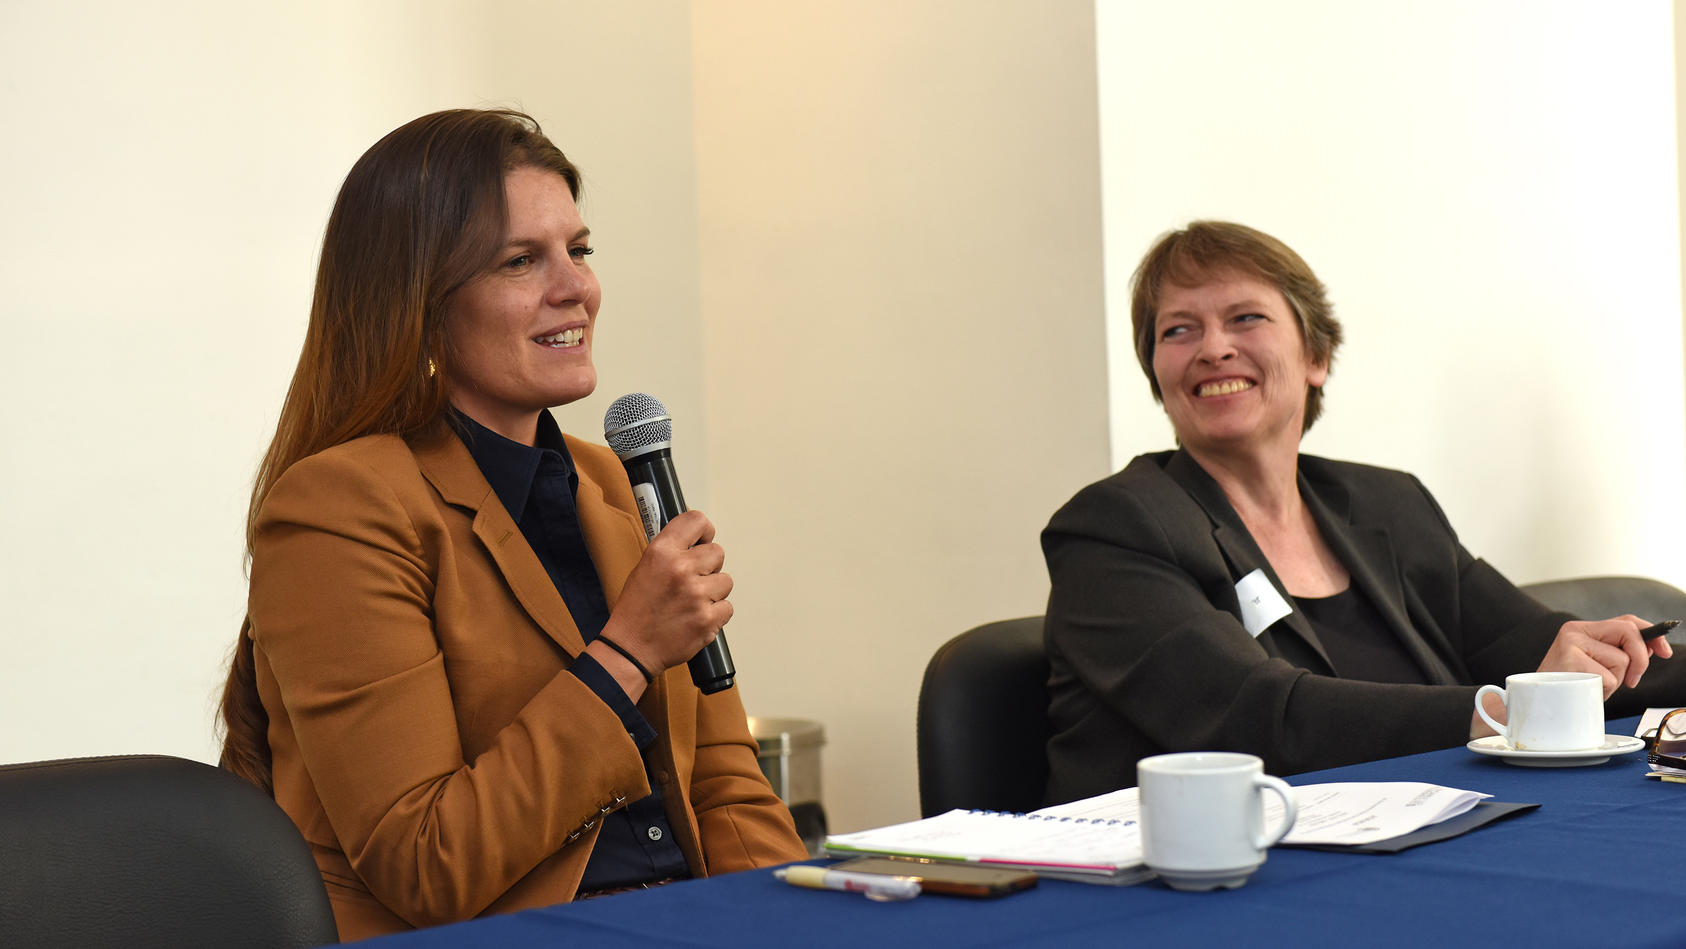 Hillery Midkiff and Ginny Bouvier, Colombia Network of Women Mediators